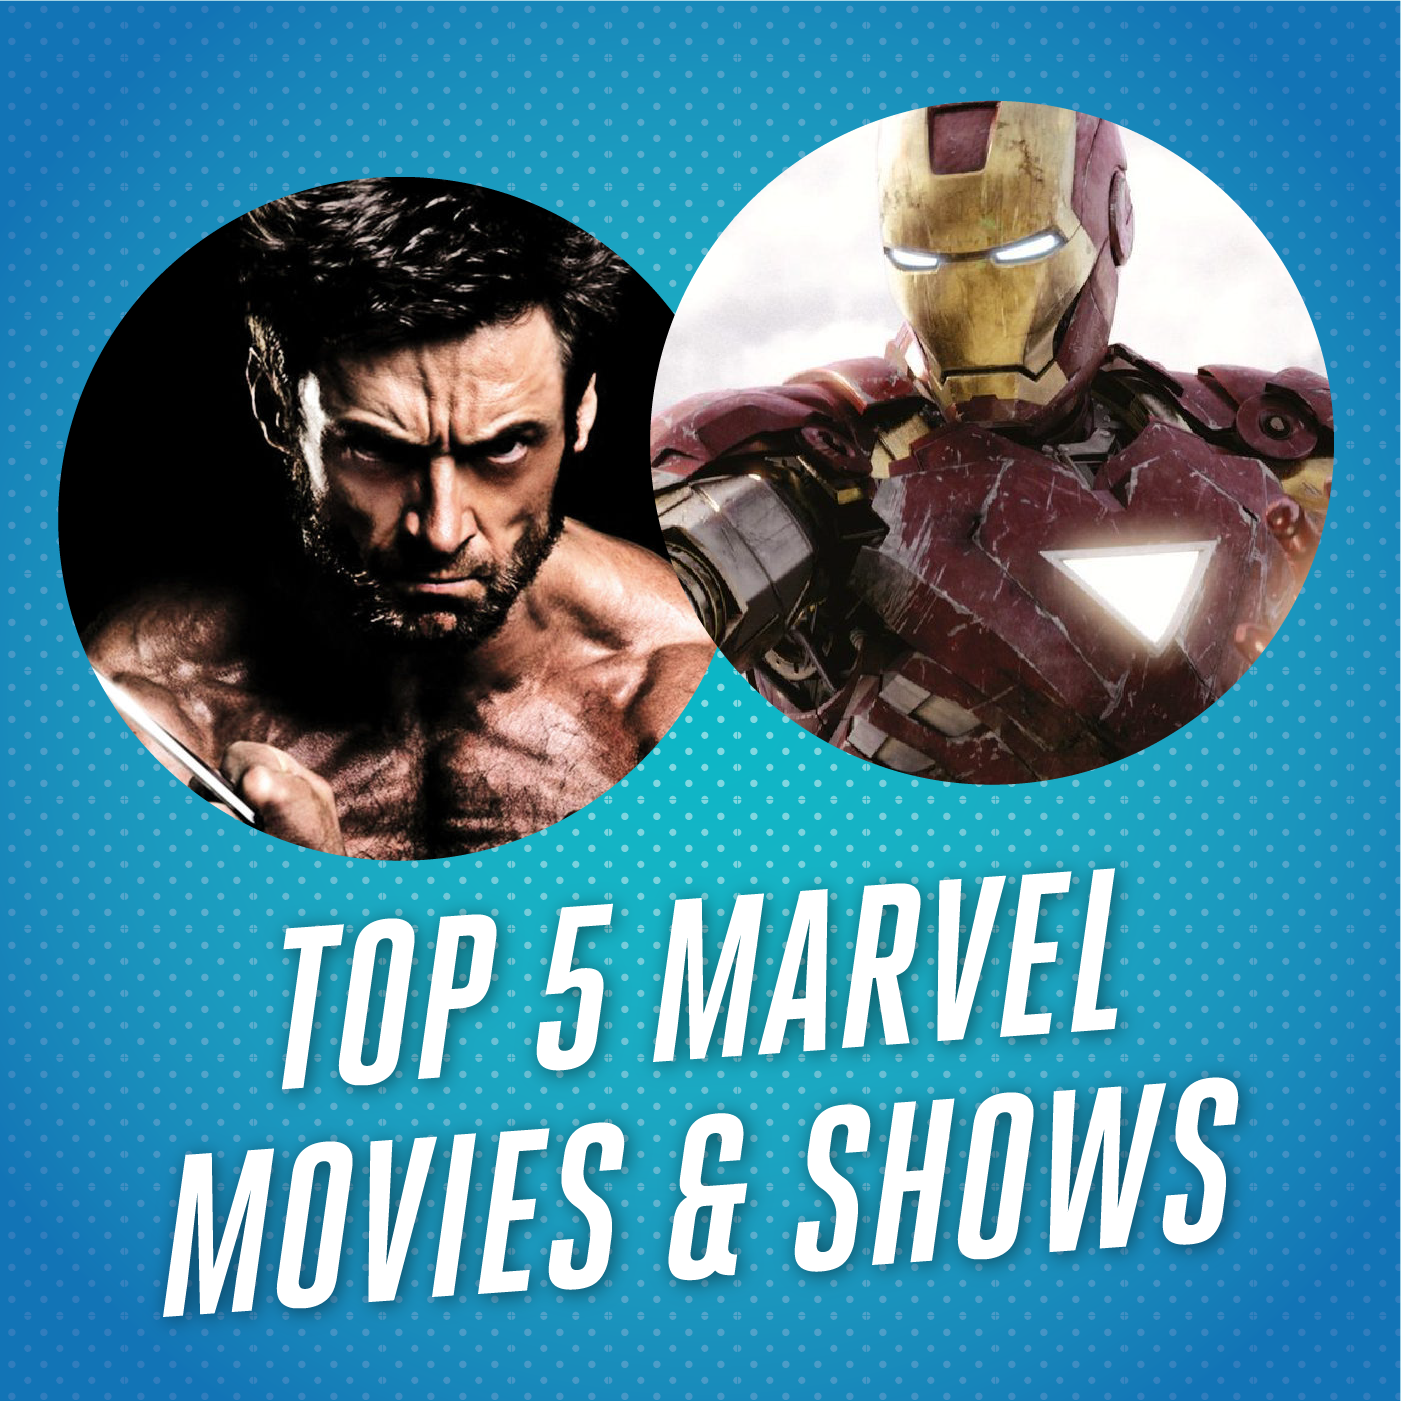 Top 5 Marvel Movies & Shows.png